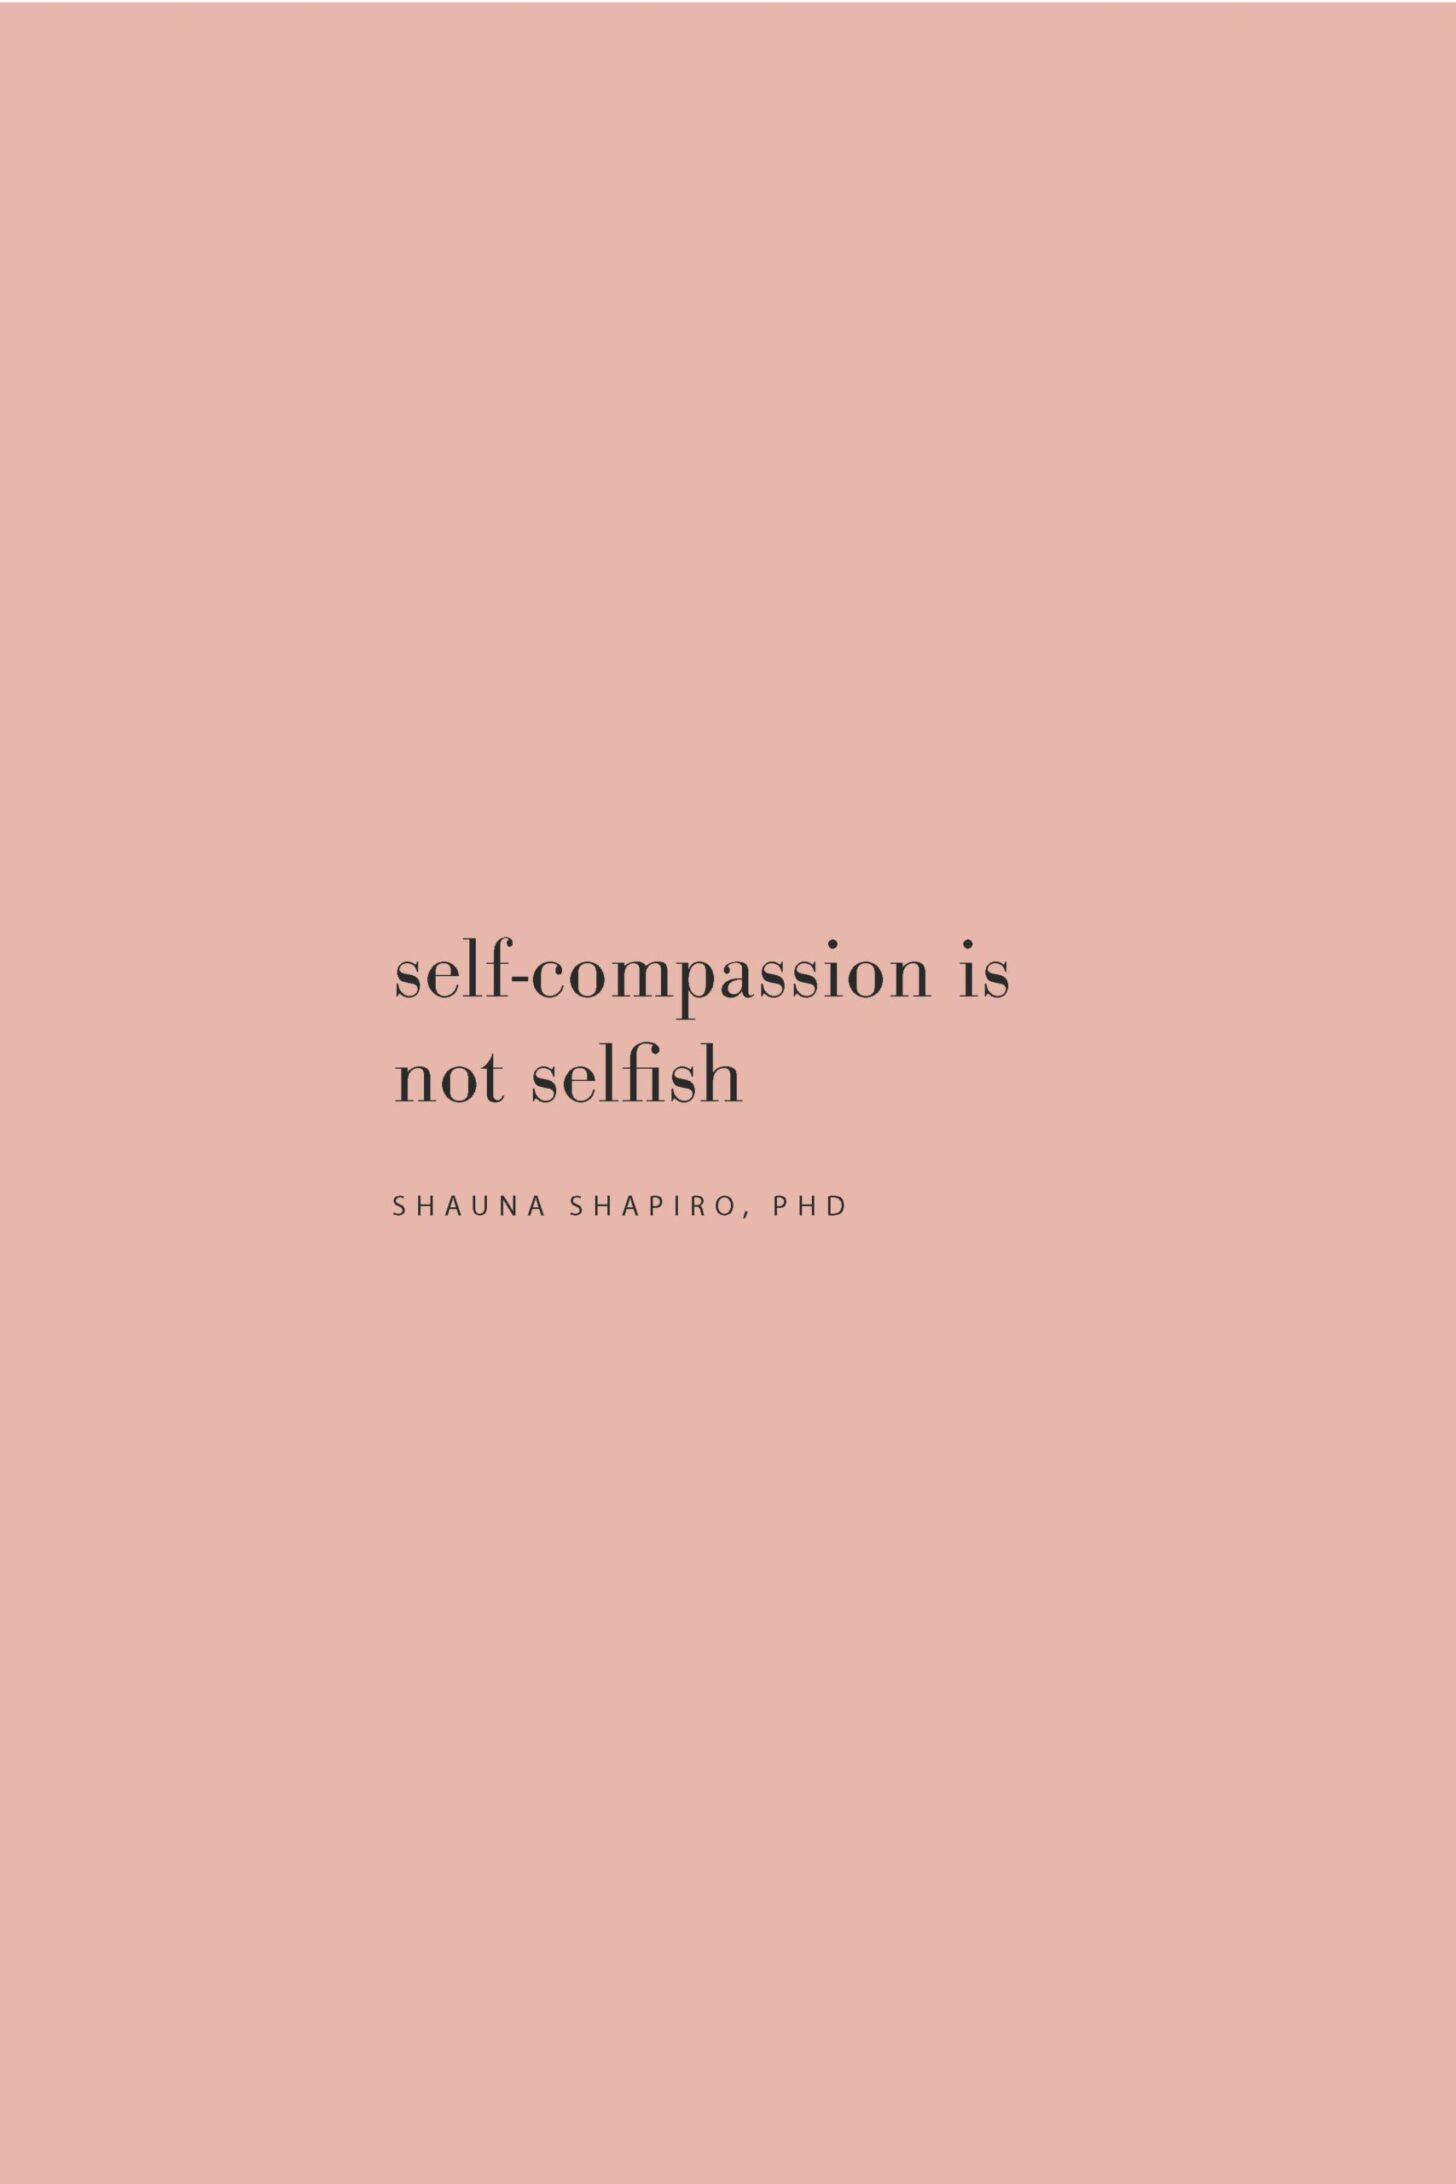 Quote on self-compassion by Shauna Shapiro, PhD on the Feel Good Effect Podcast #realfoodwholelife #feelgoodeffectpodcast #selfcarequote #motivationalquote #inspirationalquote #positivityquote #selfkindnessquote #selfcompassionquote #selflovequote